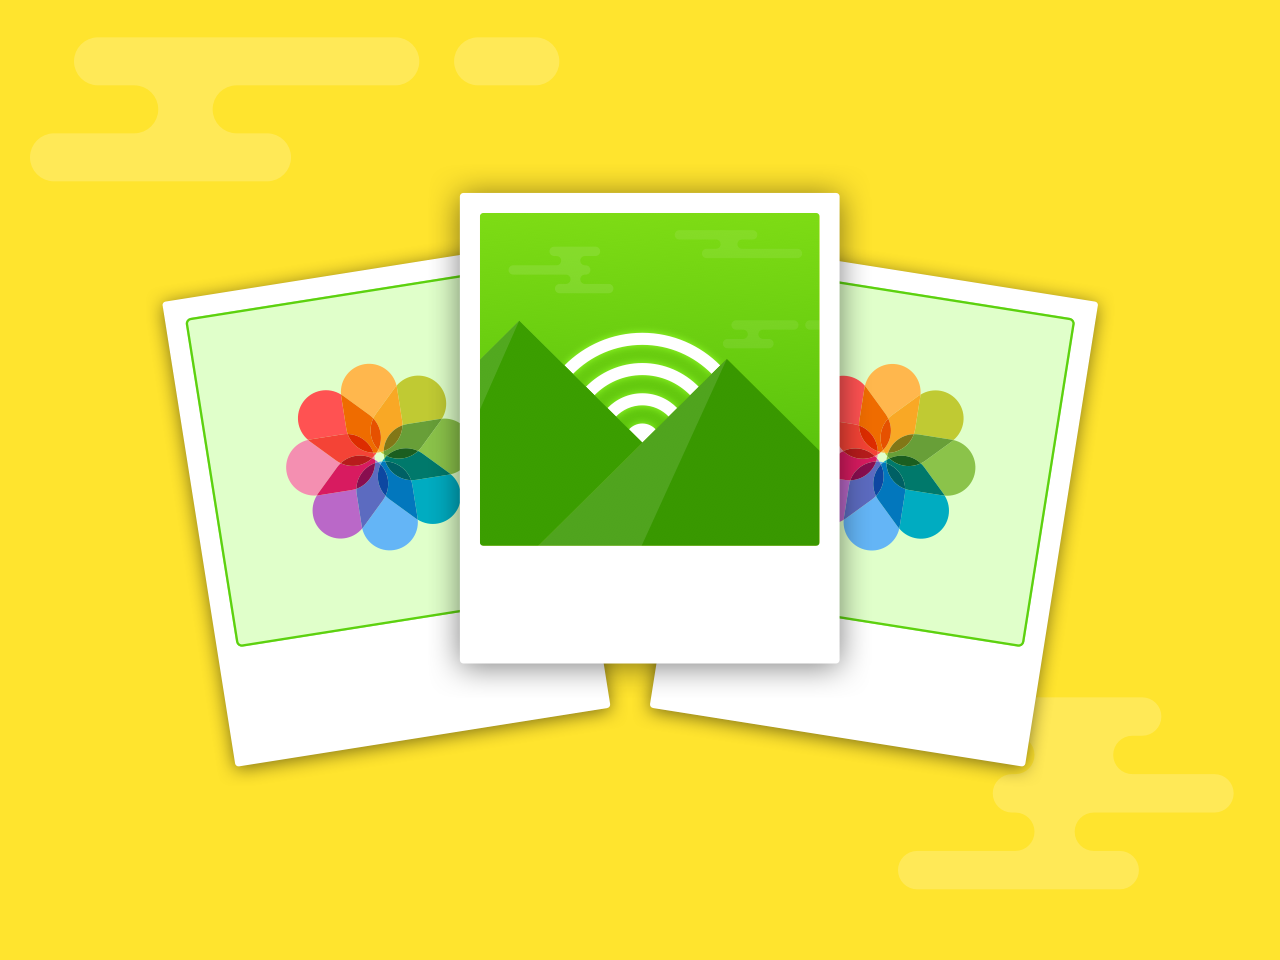 Photo Transfer WiFi - the best app to transfer photos from